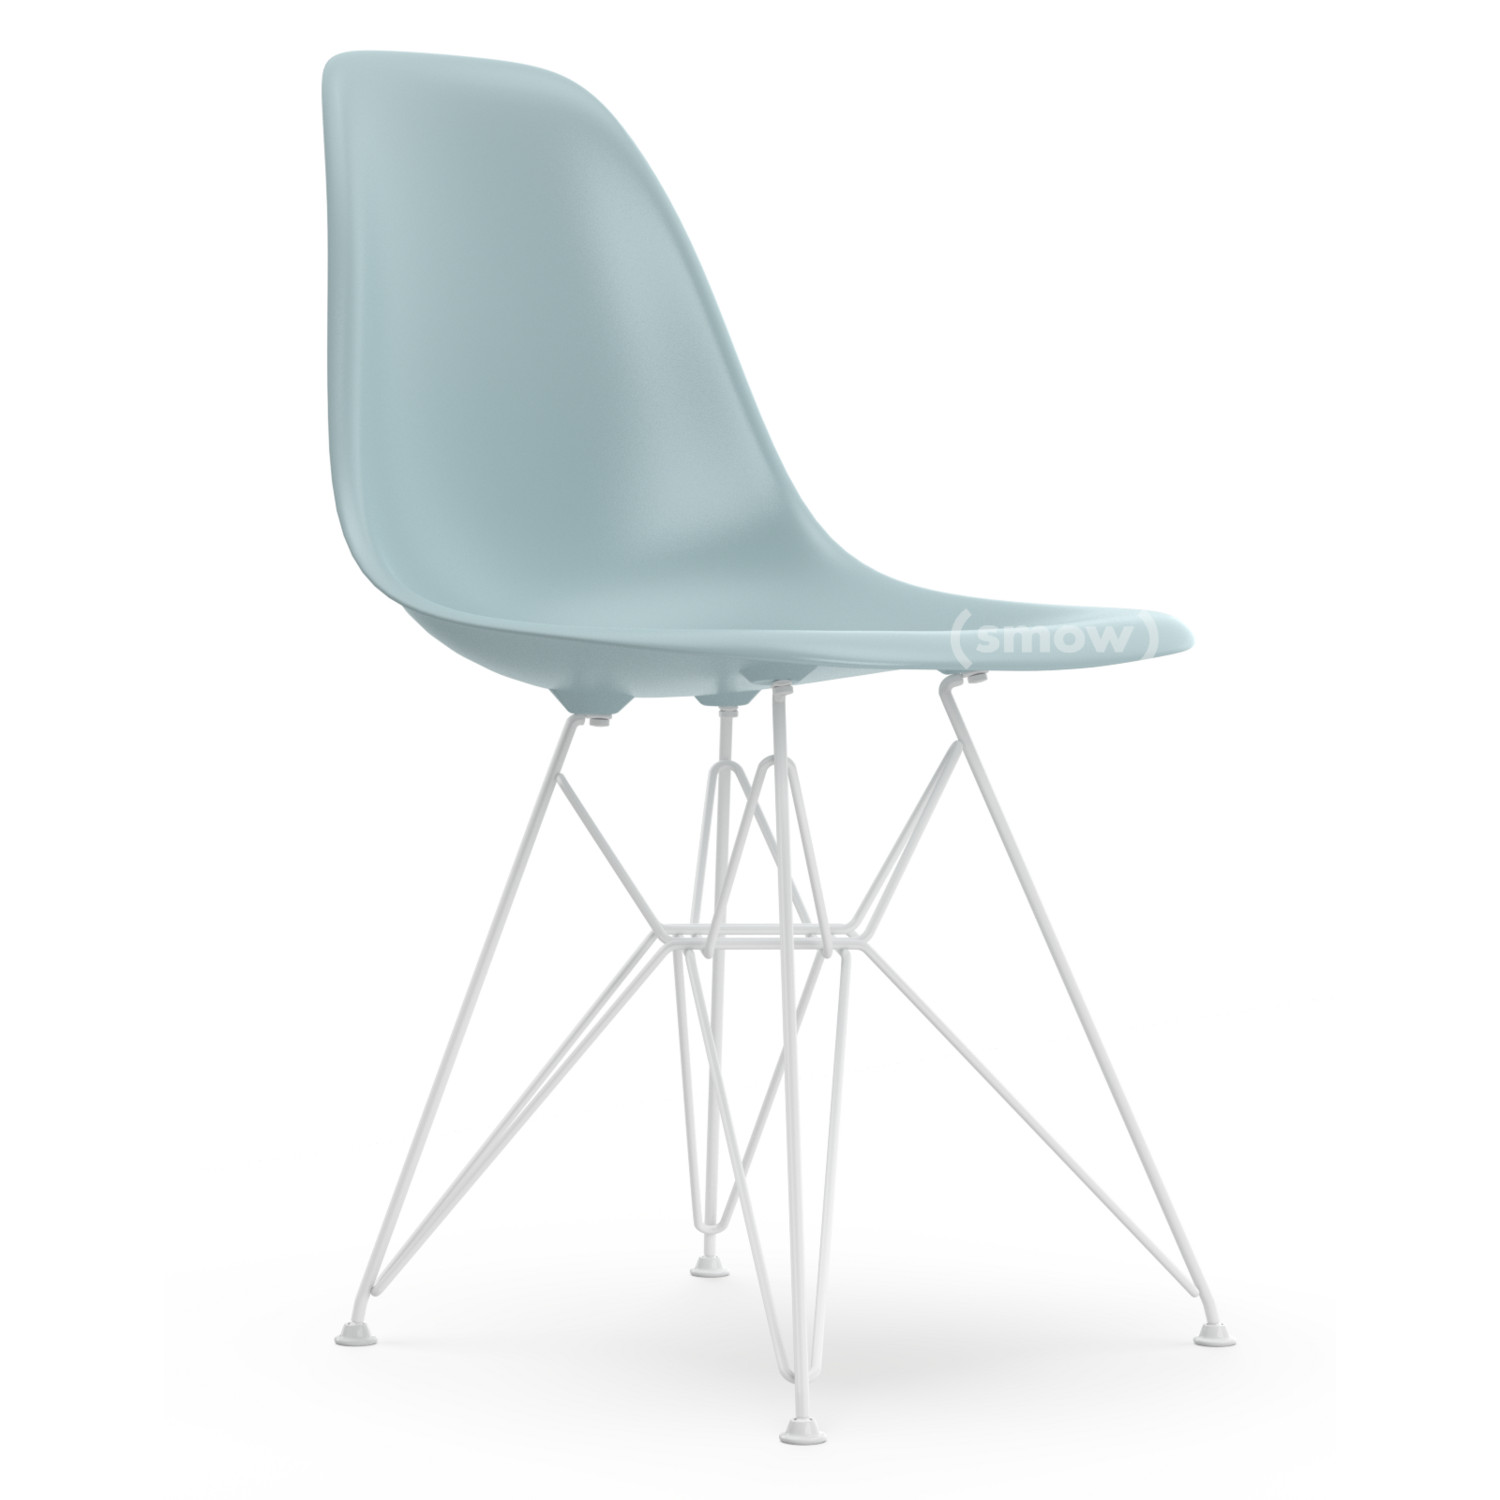 Eames Chair Weiß Vitra Eames Plastic Side Chair Dsr, Ice Grey, Without Upholstery, Without Upholstery, Standard Version - 43 Cm, Coated White By Charles & Ray Eames, 1950 - Designer Furniture By Smow.com